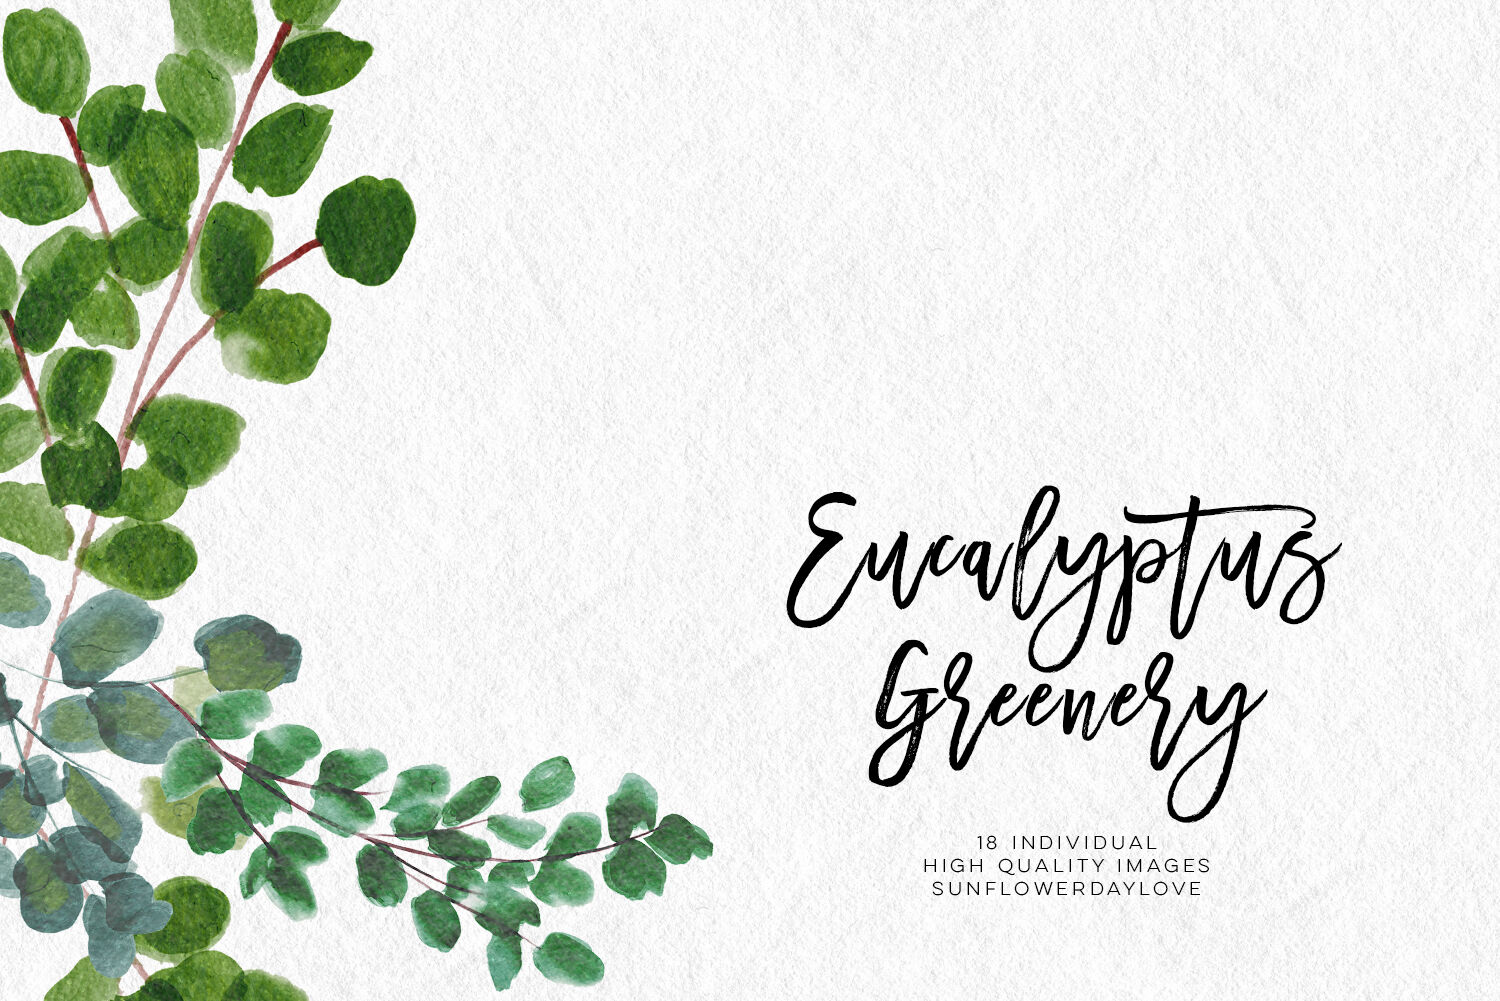 Greenery Leaf Watercolor clipart, Eucalyptus clipart By Sunflower ...